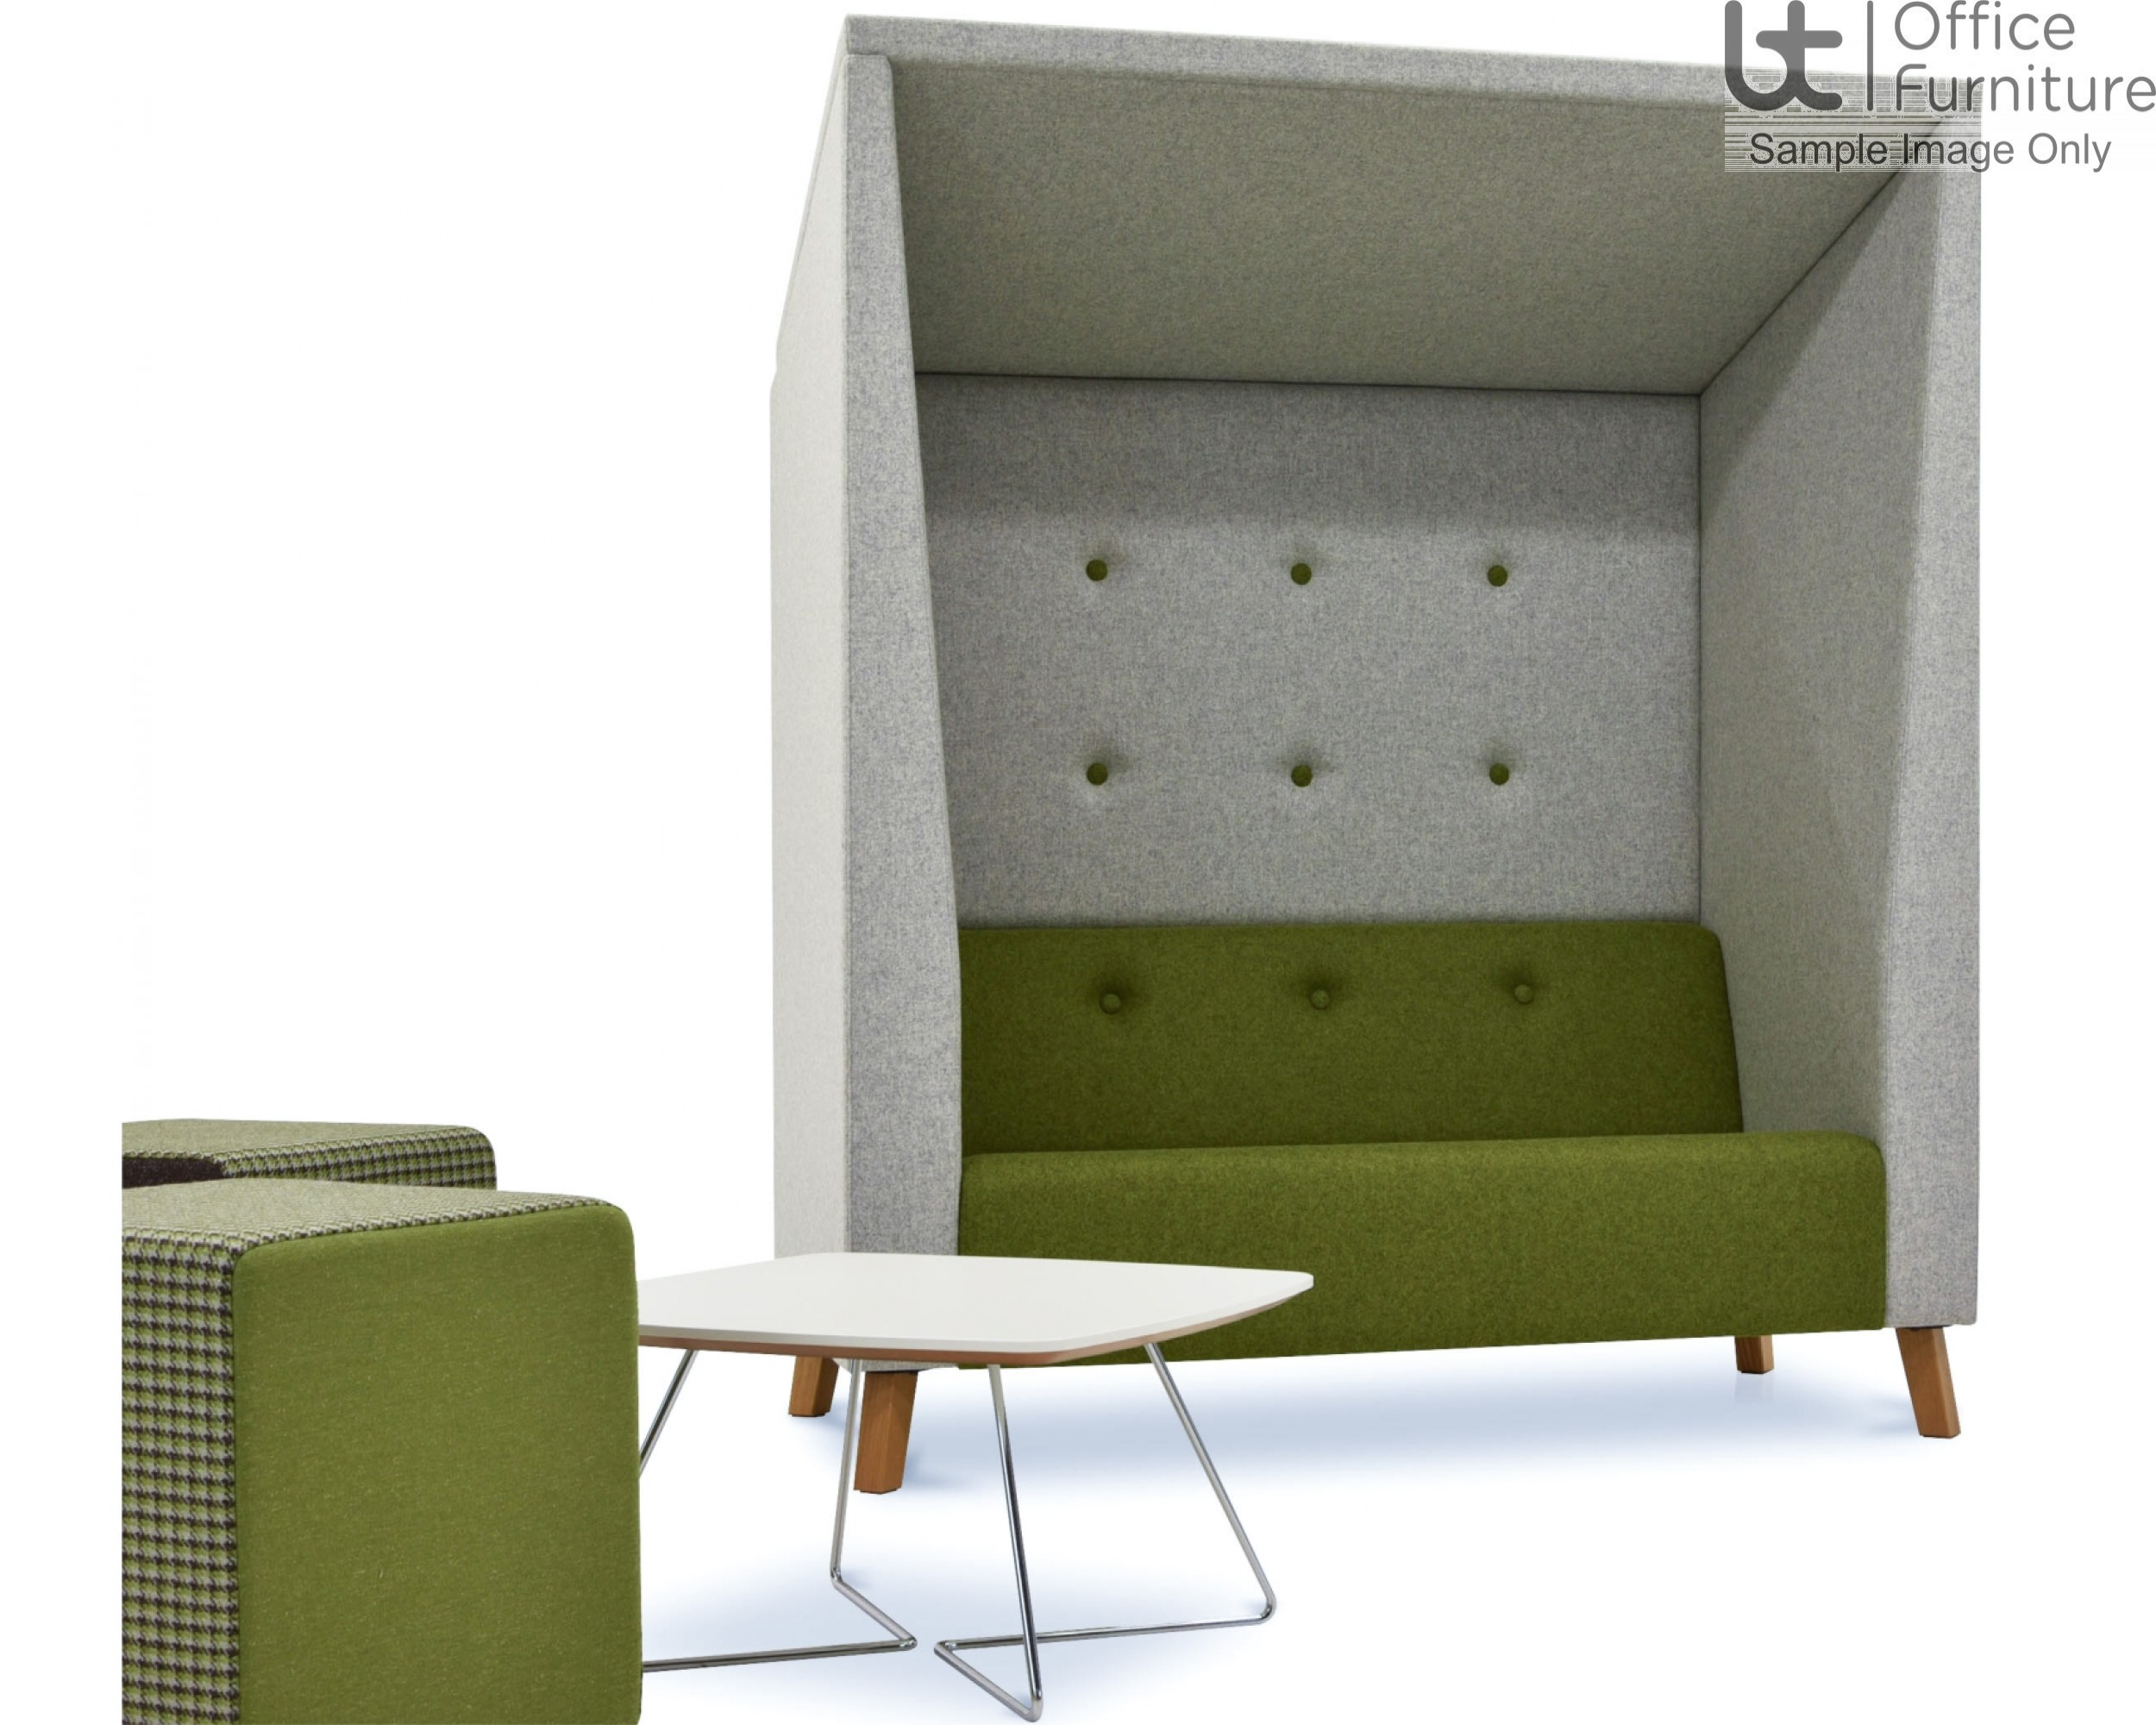 Verco Pod/Booth - Jensen Shelter Two Person Soft Seating Unit